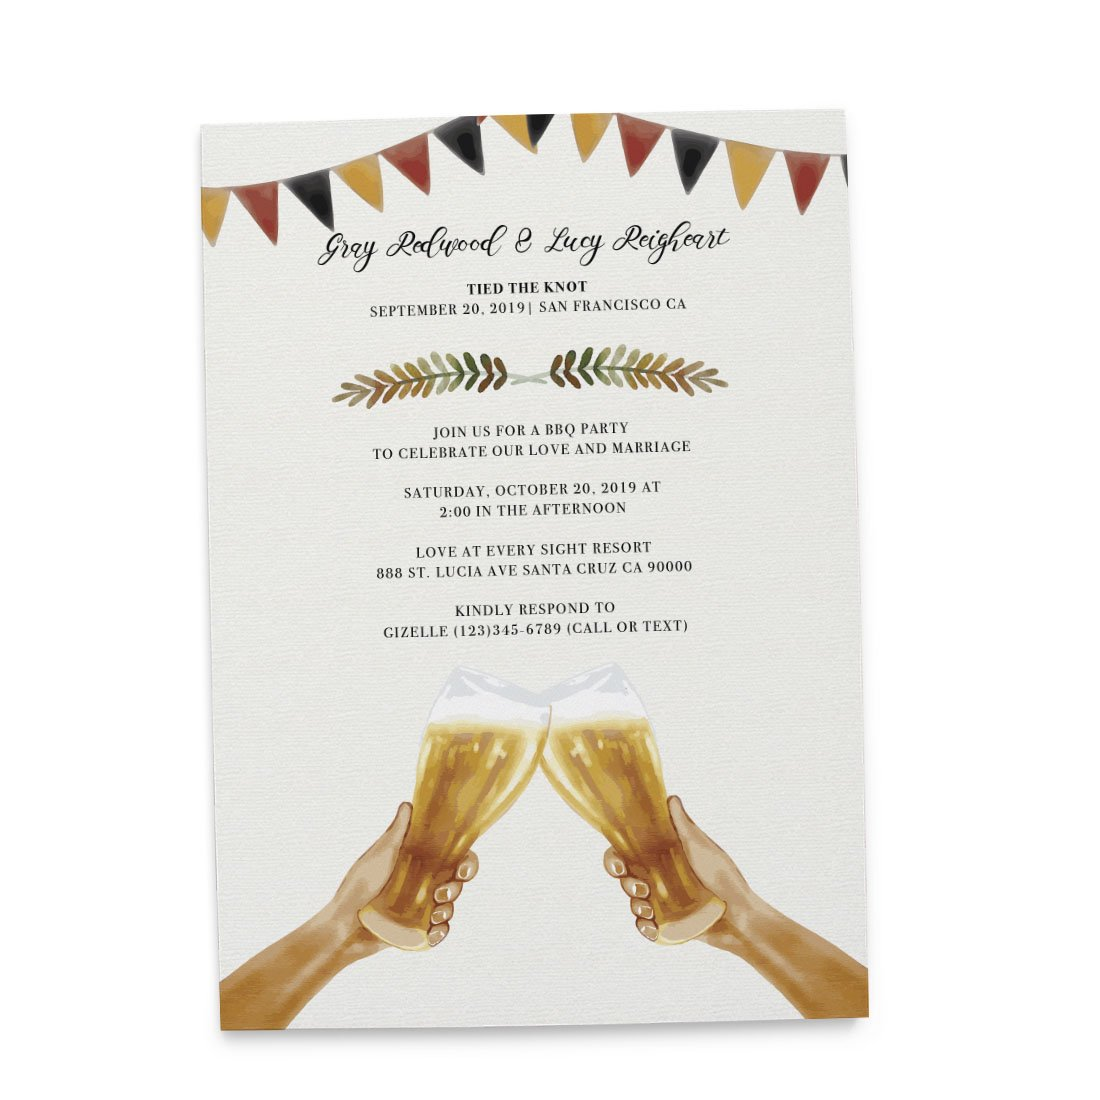 ''Tied the Knot'' Elopement Wedding Announcement Cards with Envelopes | Marriage Reception Invitation - We Eloped Party Invites - Custom, Personalized Card Stock - Country BBQ Theme Design - Set of 20